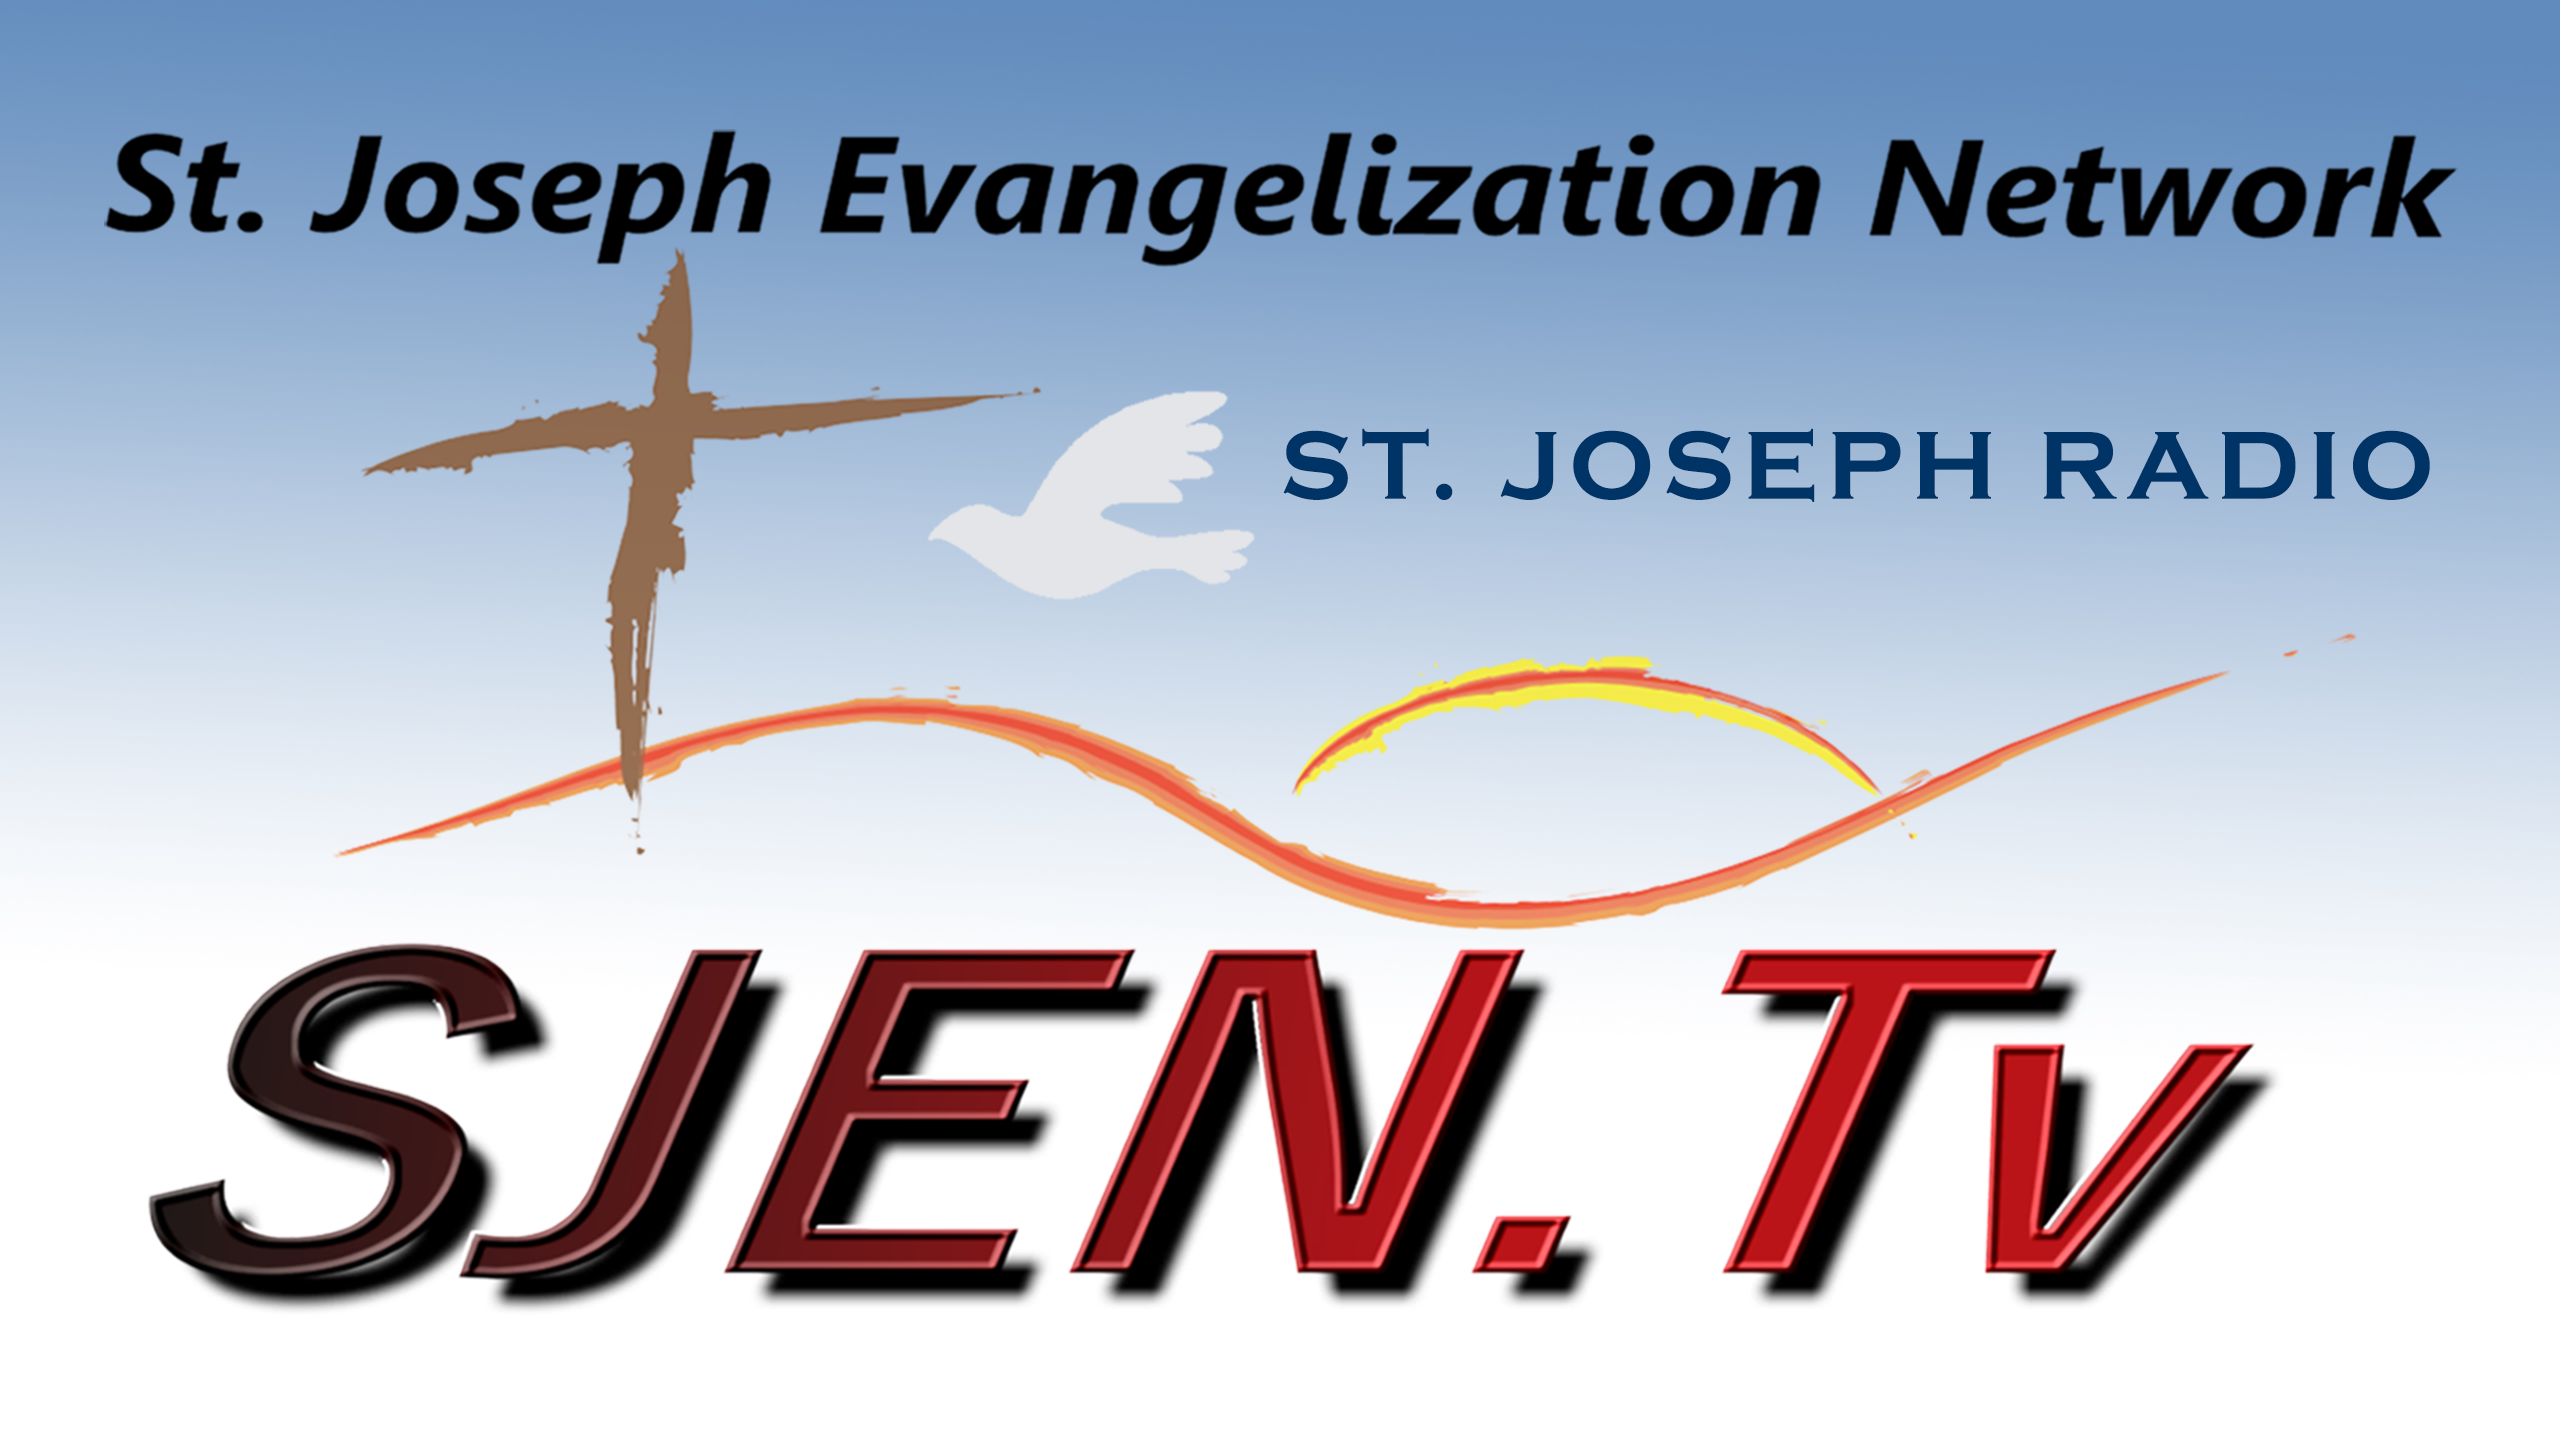 St. Joseph Evangelization Network of Saint Charles, MO